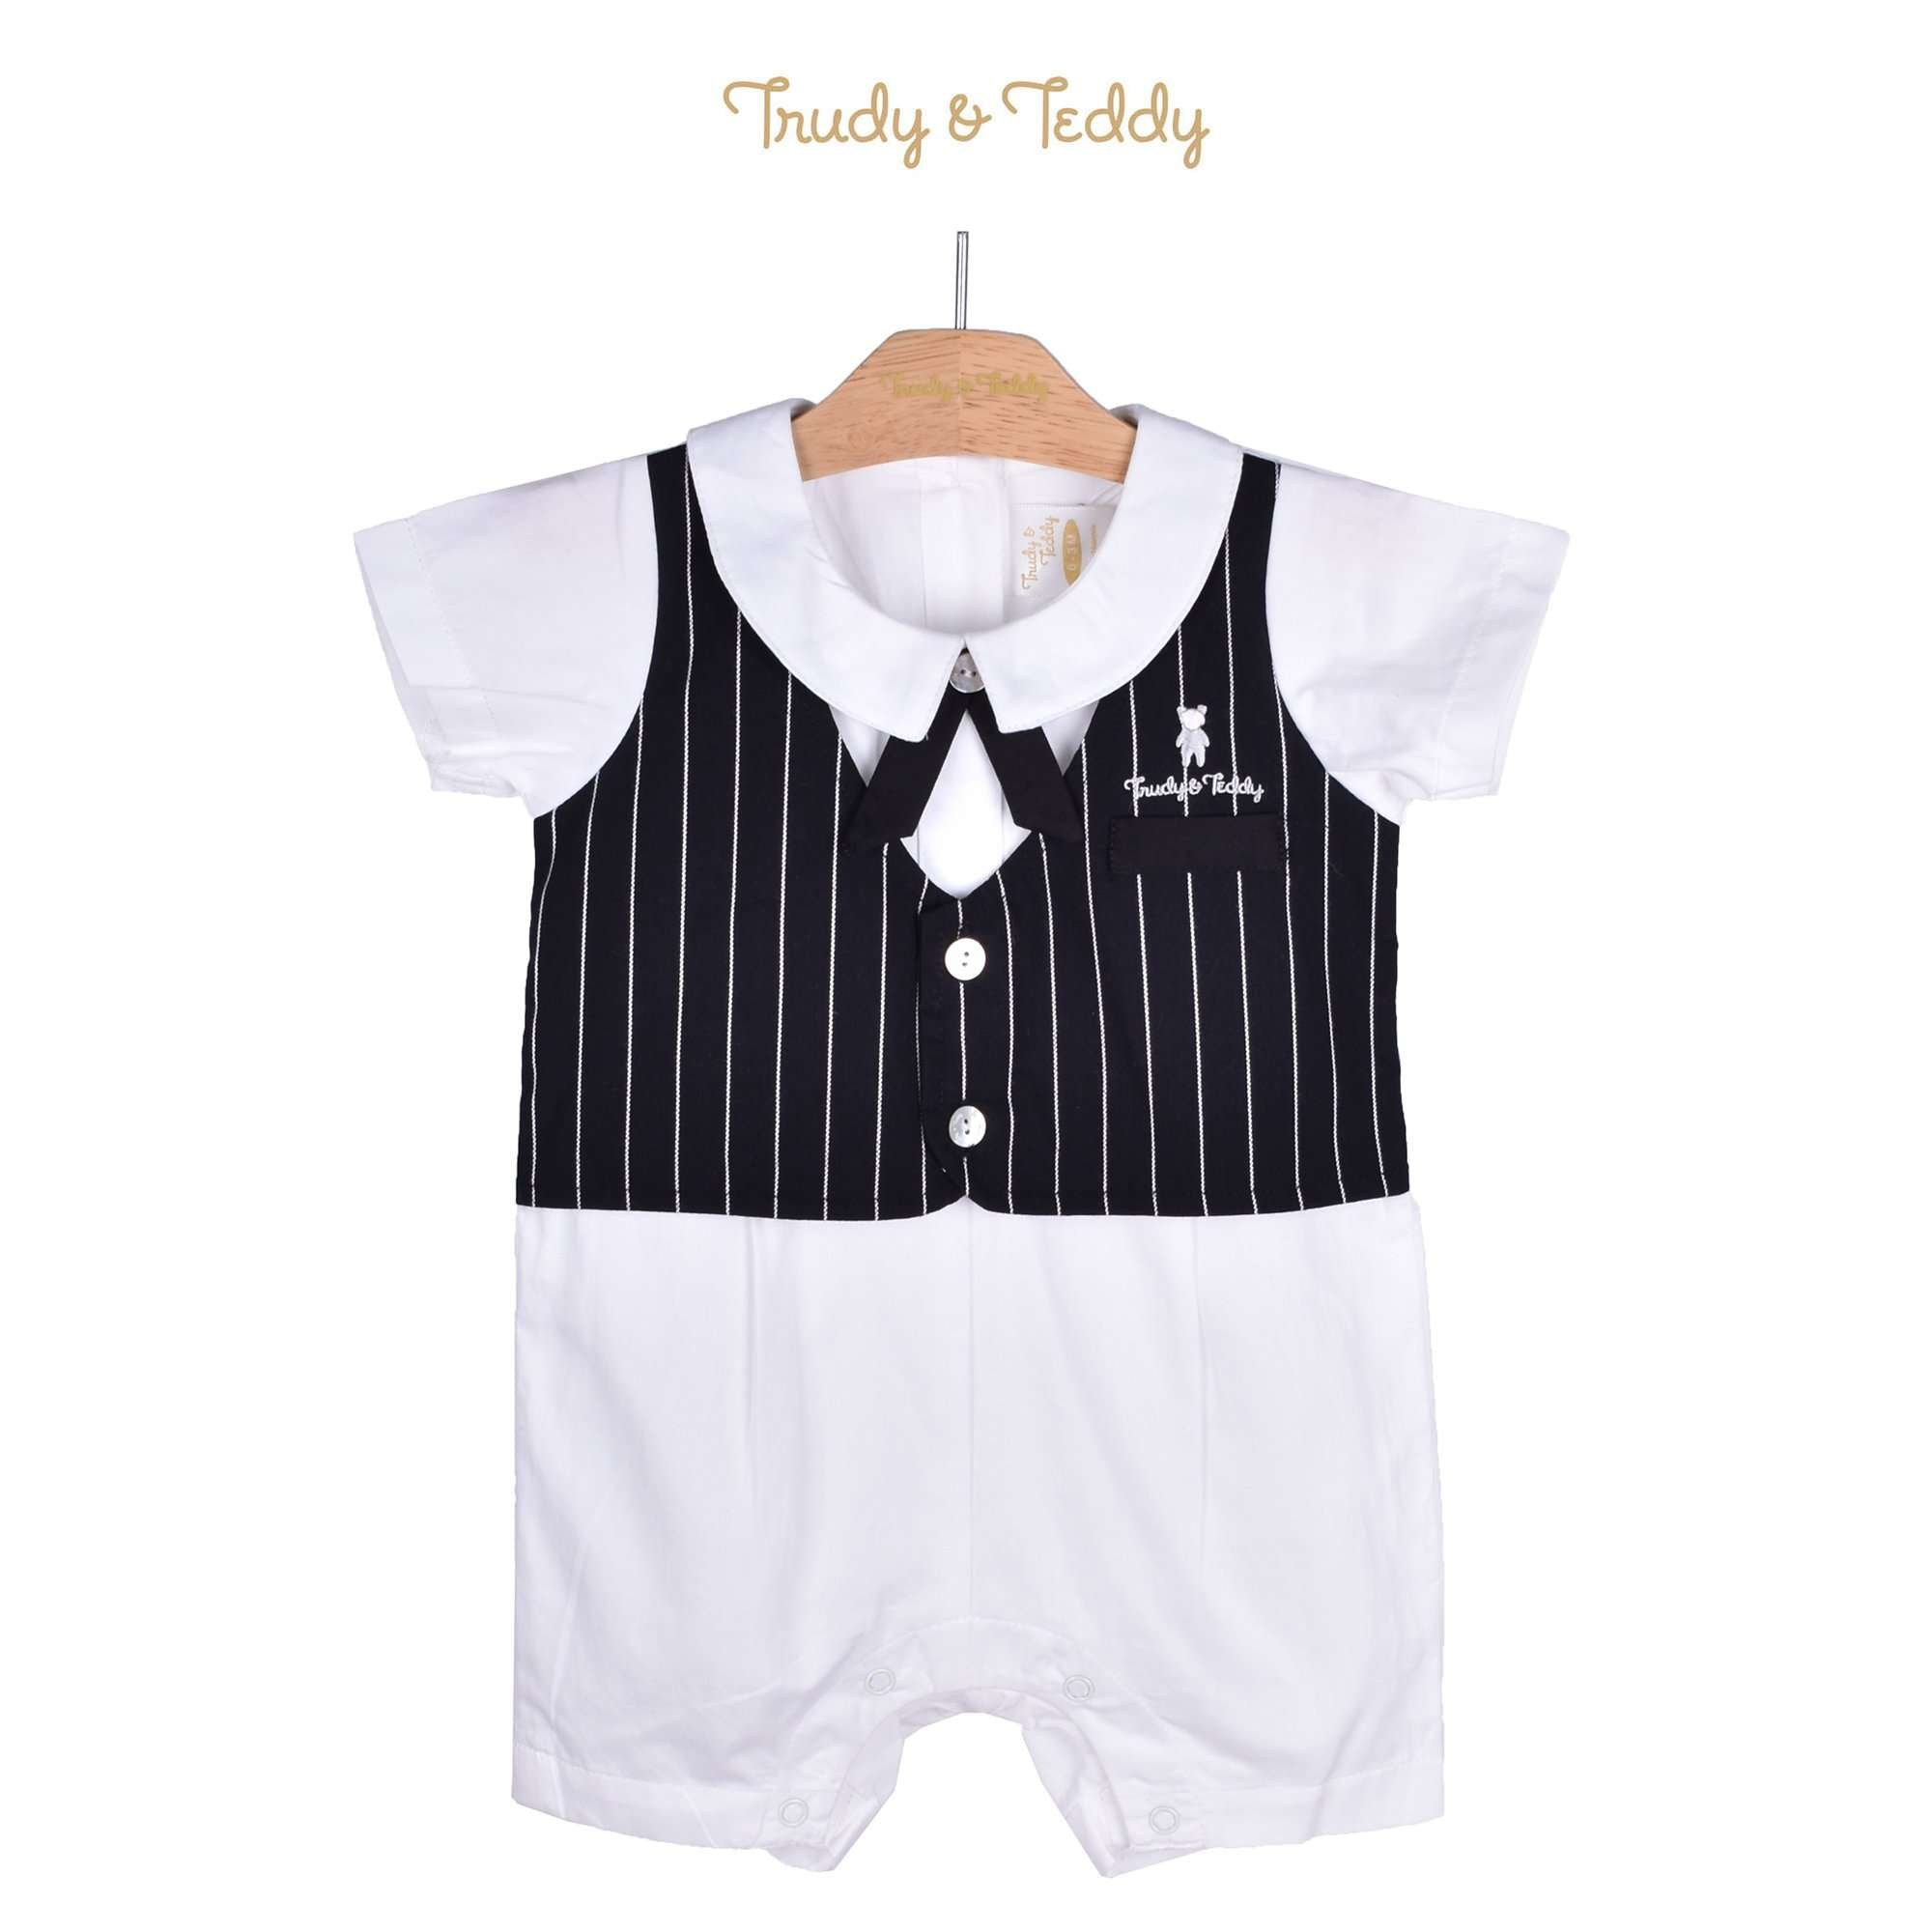 Trudy & Teddy Baby Boy Short Sleeve Short Romper 810080-351 : Buy Trudy & Teddy online at CMG.MY